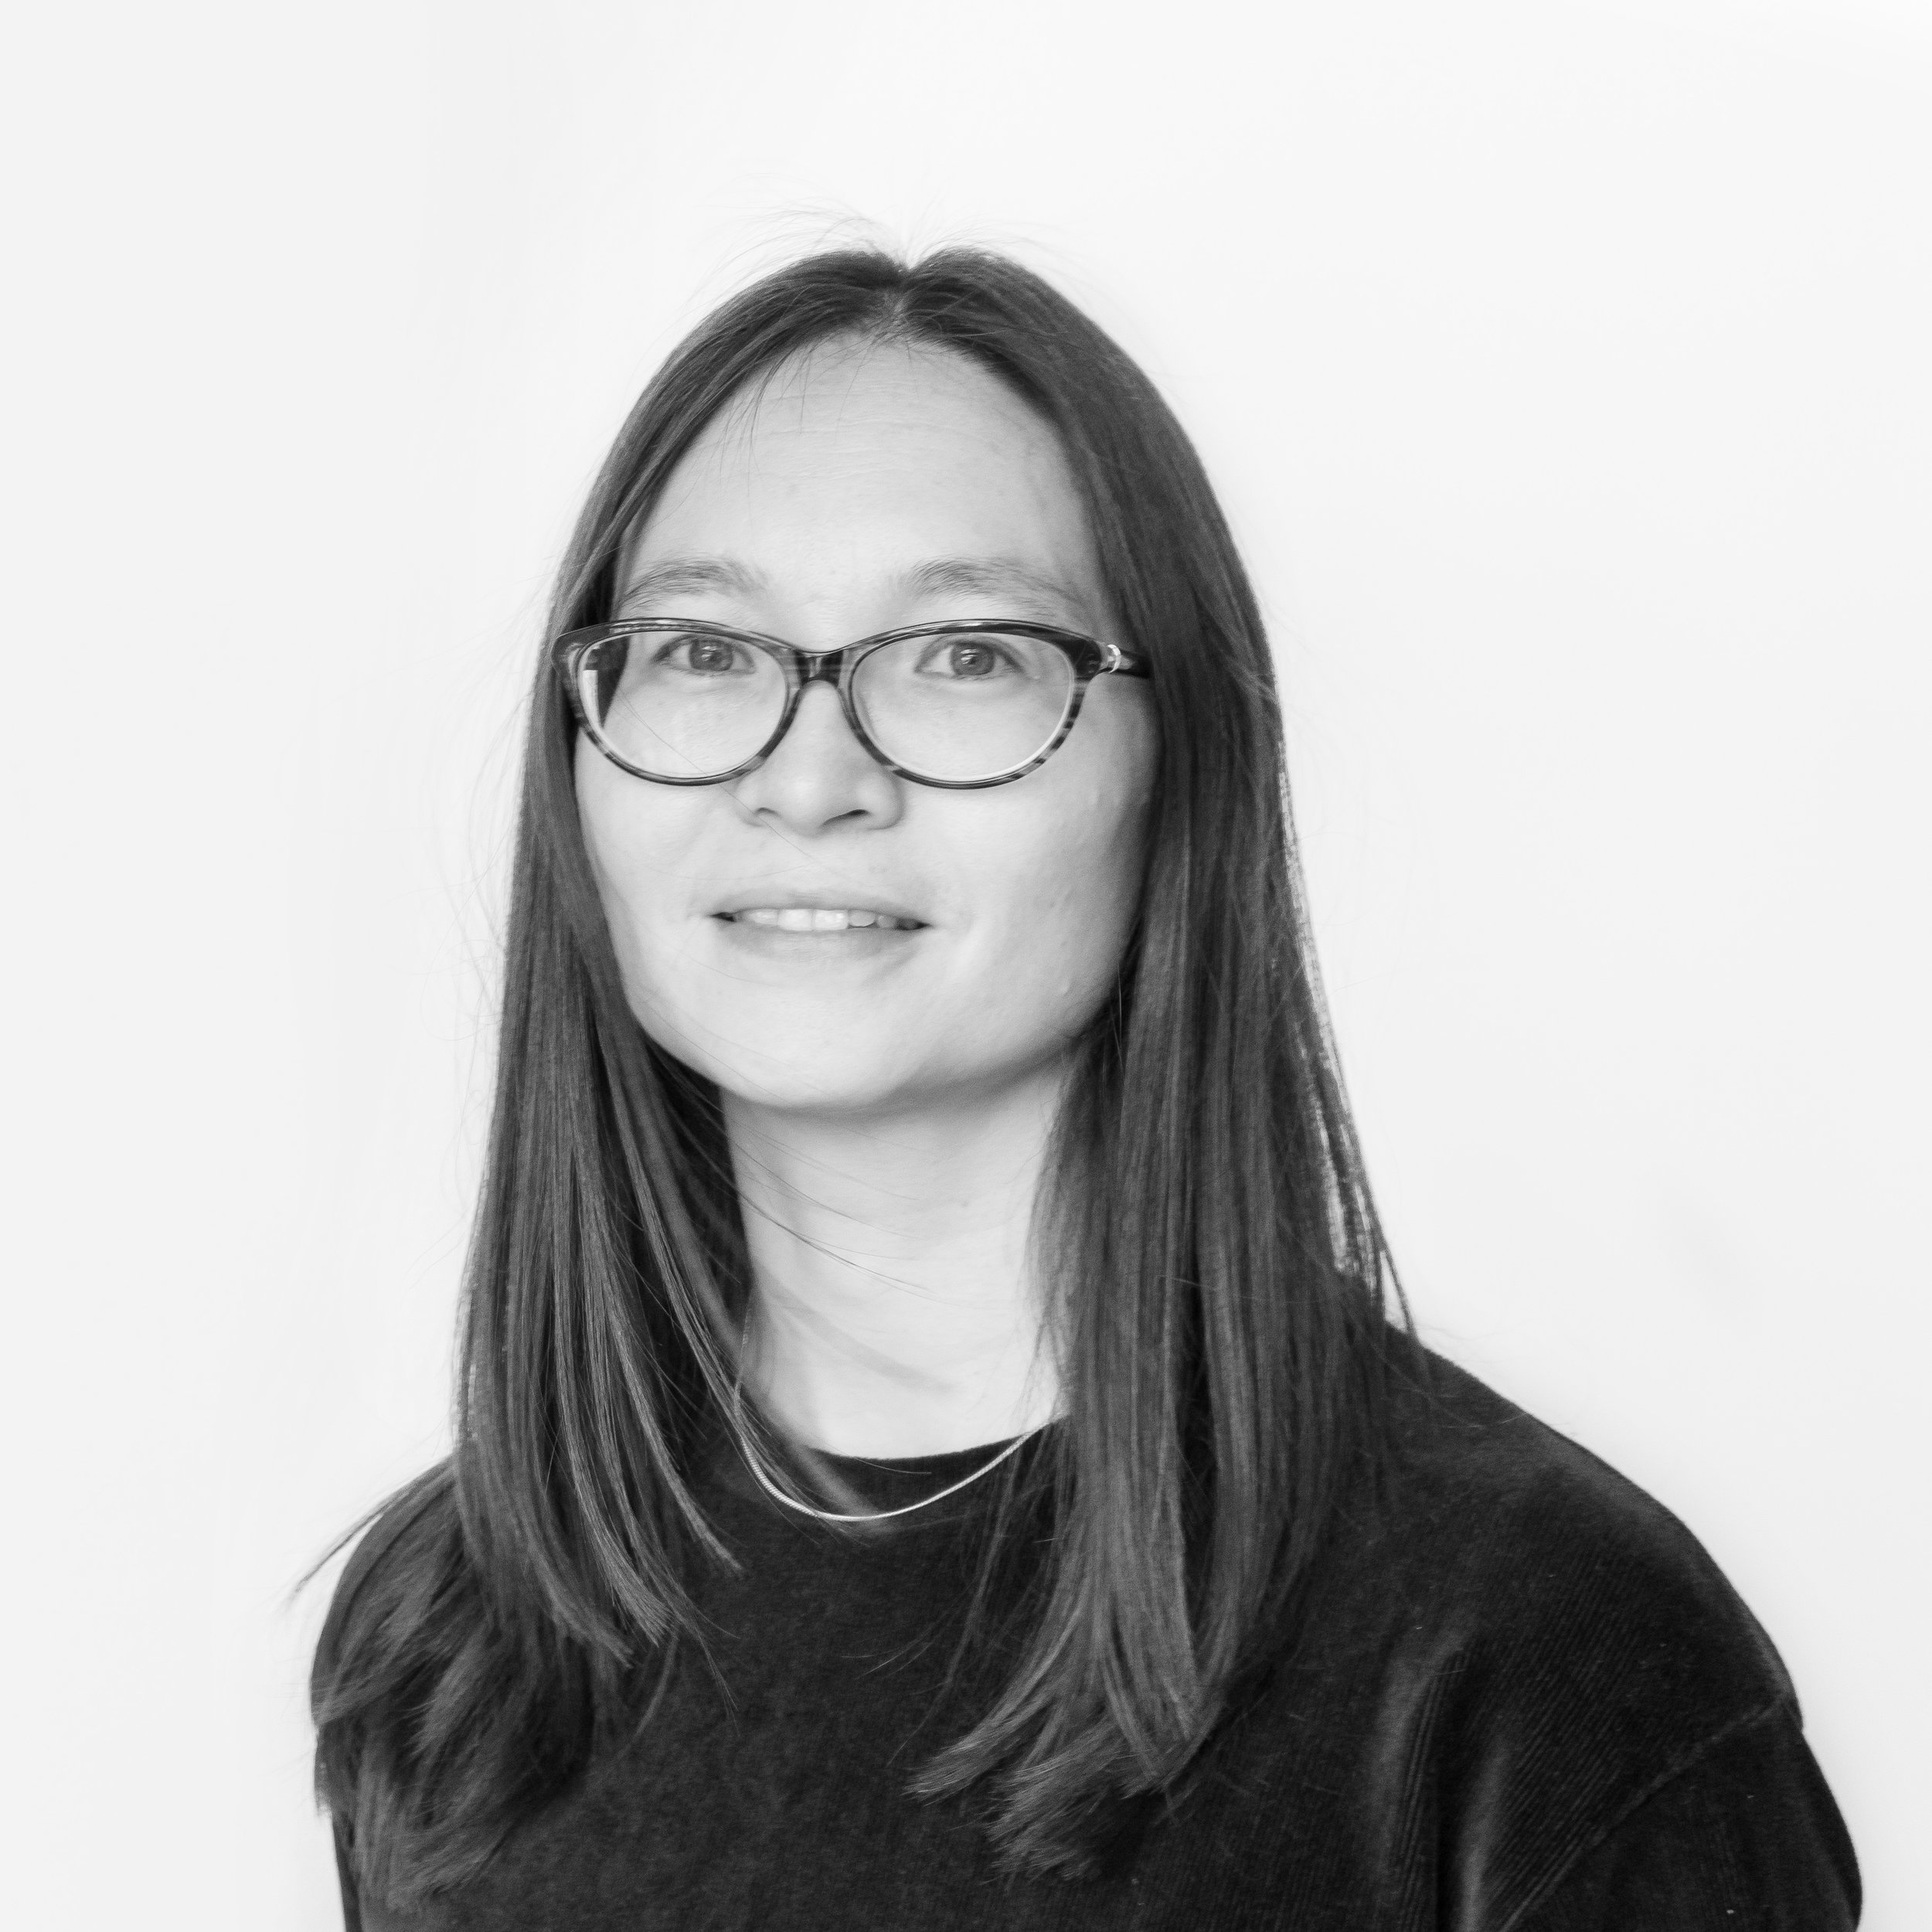 Celeste Hong  - Interior Designer  Celeste is an Interior Designer with a BA Hons degree in Interior Architecture from Leeds College of Art & Design. Since graduating in 1998 Celeste has worked in both New York and London design practices. Celeste joined AndArchitects in 2007 as one of the very first staff members in the office! Since then Celeste has had the opportunity to work on all aspects of interior design from high end residential to large-scale commercial projects.